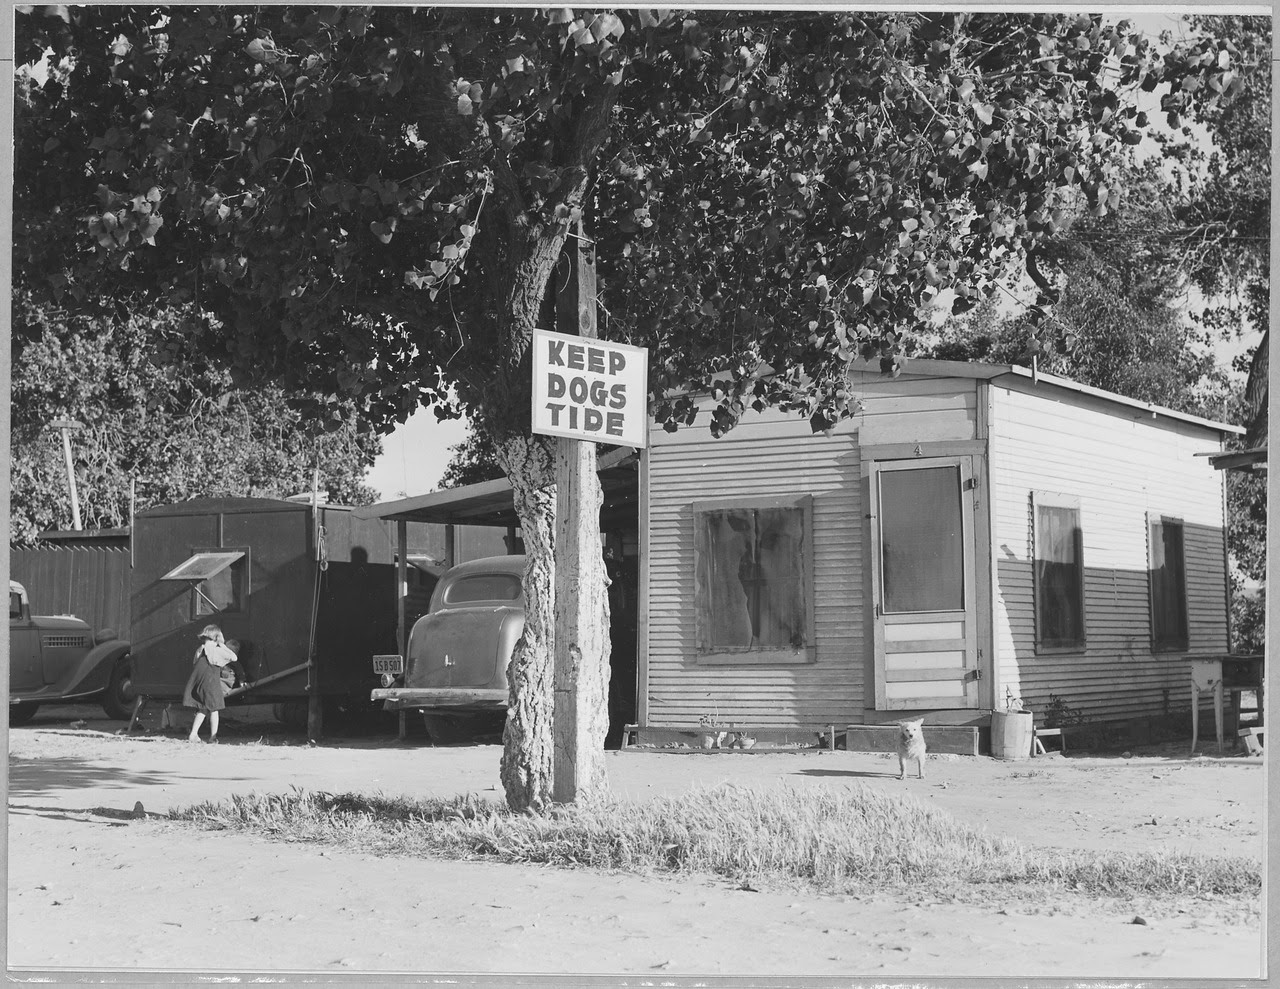 http://upload.wikimedia.org/wikipedia/commons/thumb/c/cc/Contra_Costa_County%2C_California._Entrance_to_Davis_Auto_Camp._Family_with_10_children_live_in_the_tr_._._._-_NARA_-_521779.tif/lossy-page1-1280px-Contra_Costa_County%2C_California._Entrance_to_Davis_Auto_Camp._Family_with_10_children_live_in_the_tr_._._._-_NARA_-_521779.tif.jpg